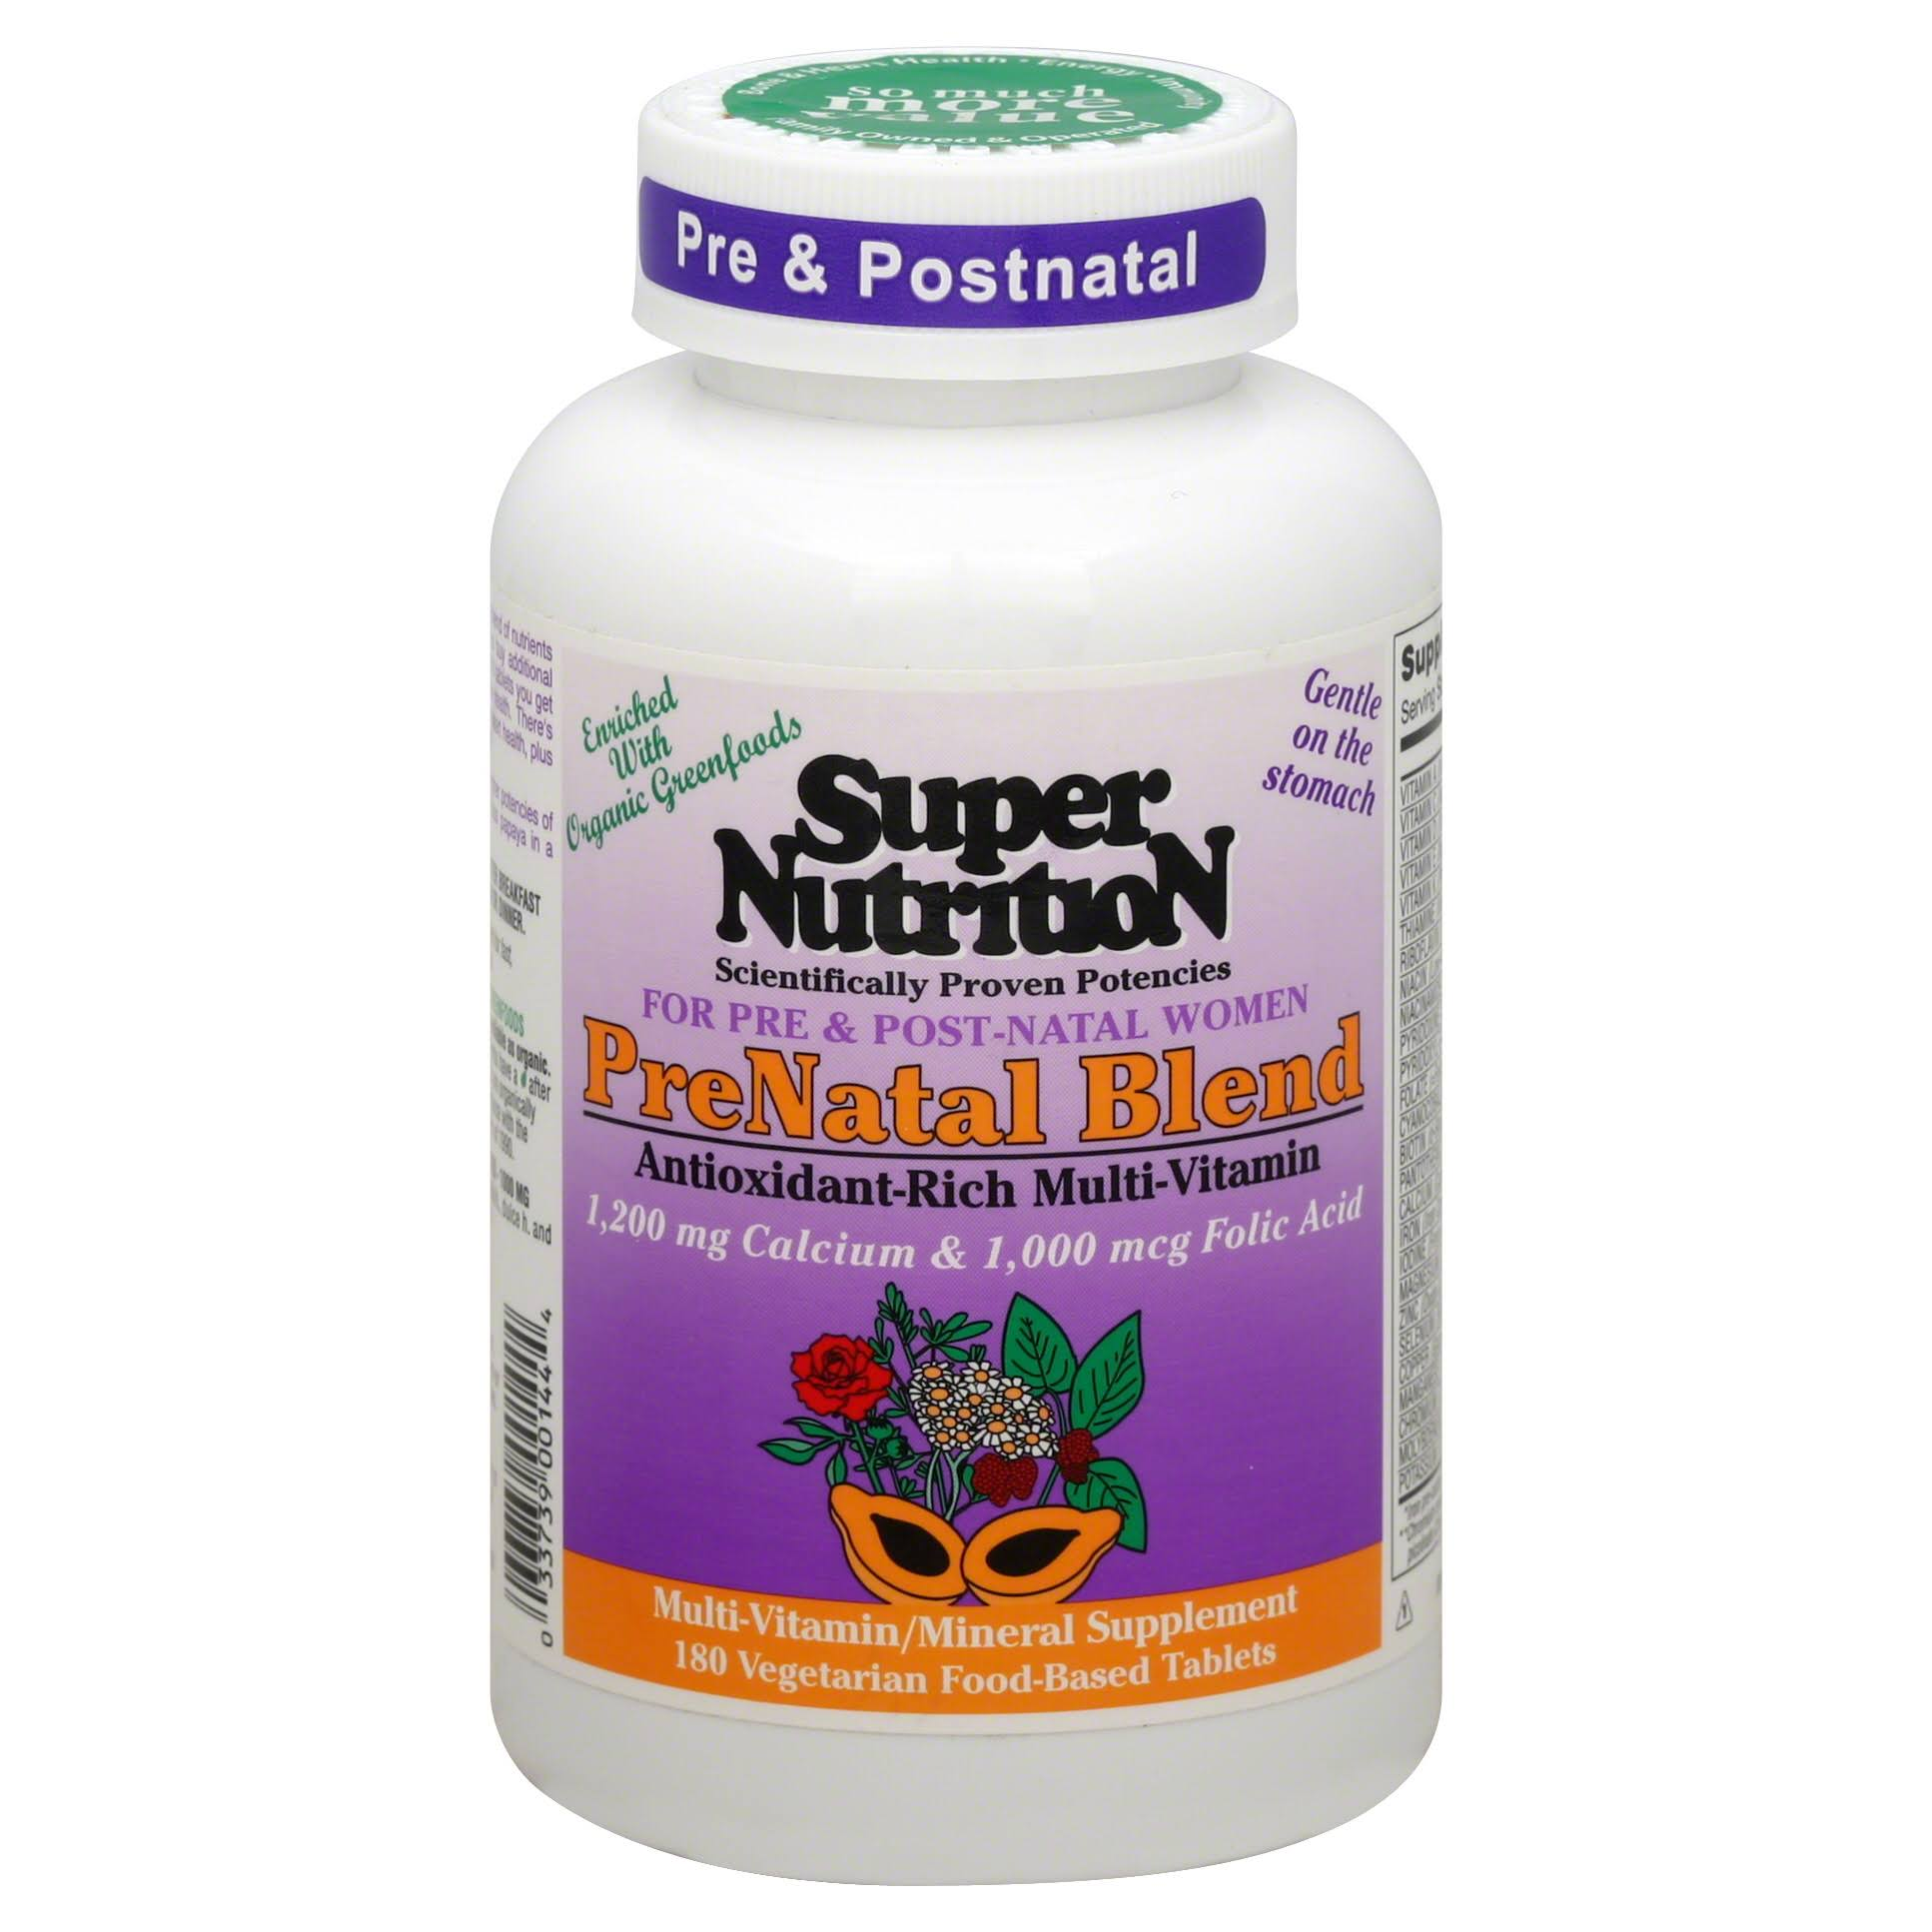 Super Nutrition Prenatal Blend Antioxident Rich Multi-vitamin - 180ct